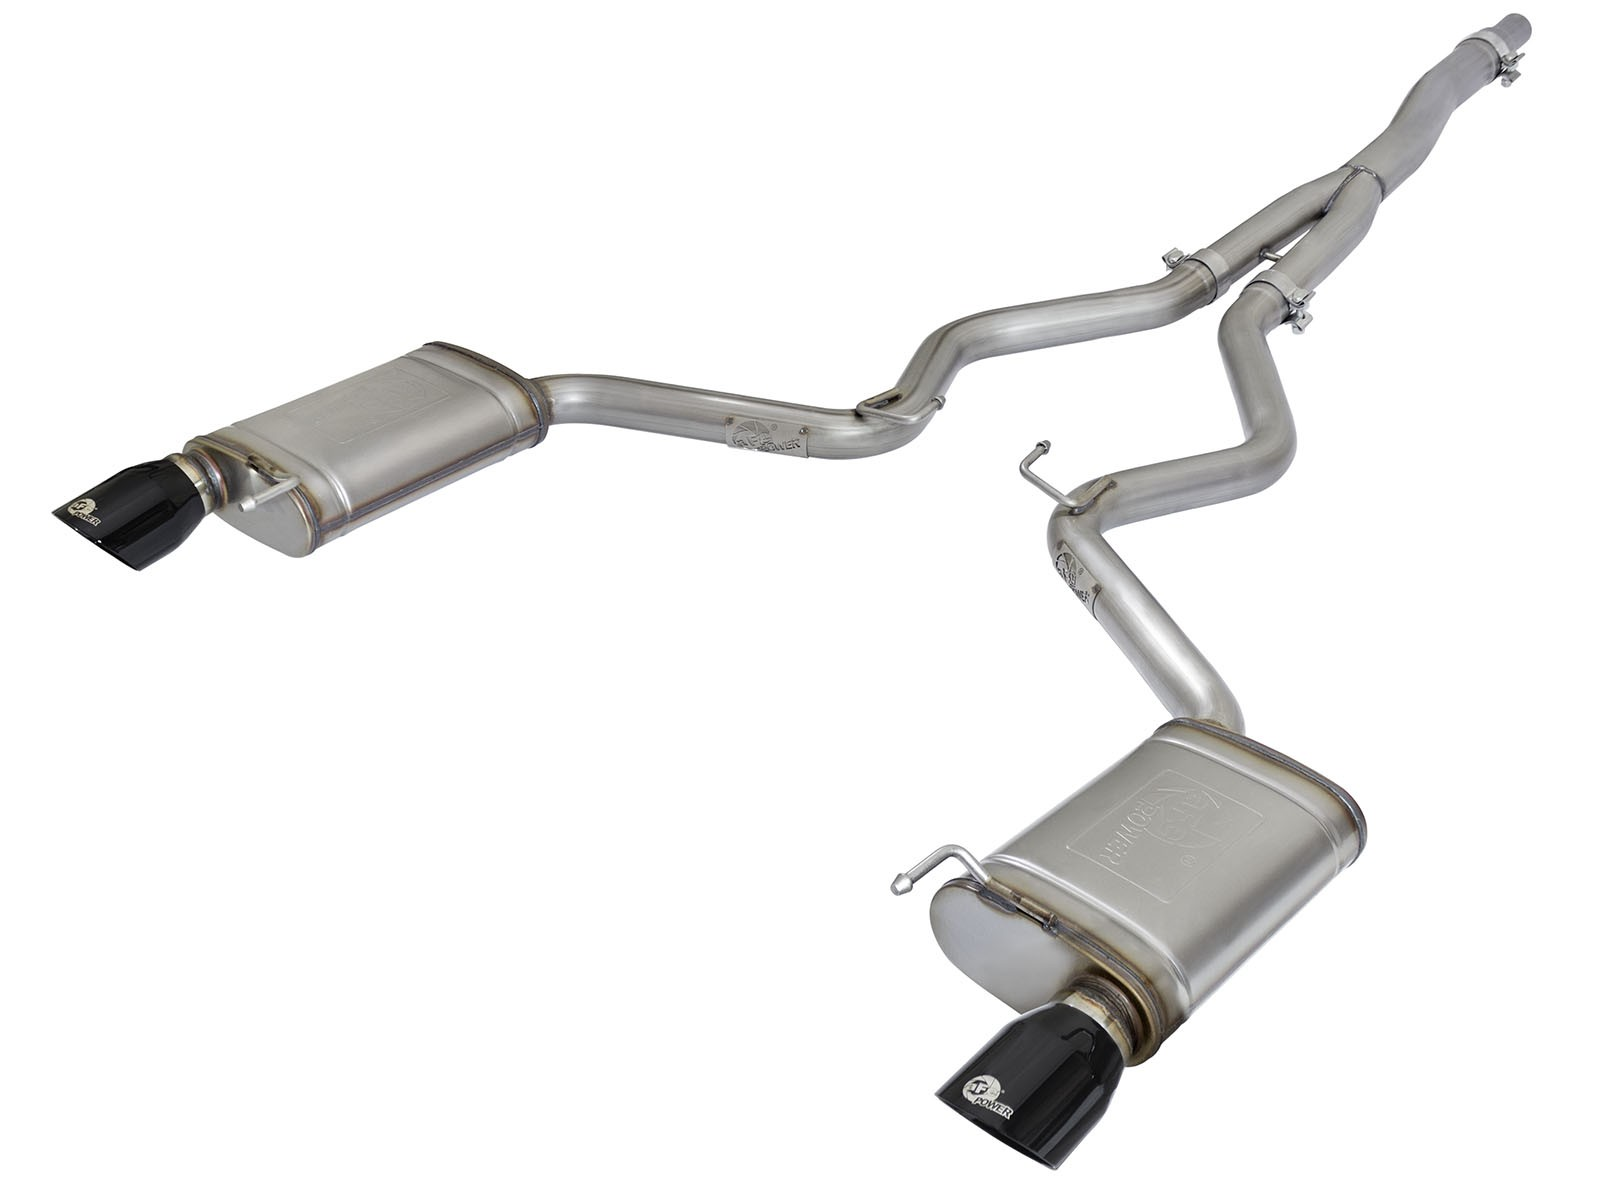 aFe MACHForce XP Exhausts Cat-Back SS-304 EXH w/ Black Tips 15-16 Ford Mustang EcoBoost 2.3L (t)